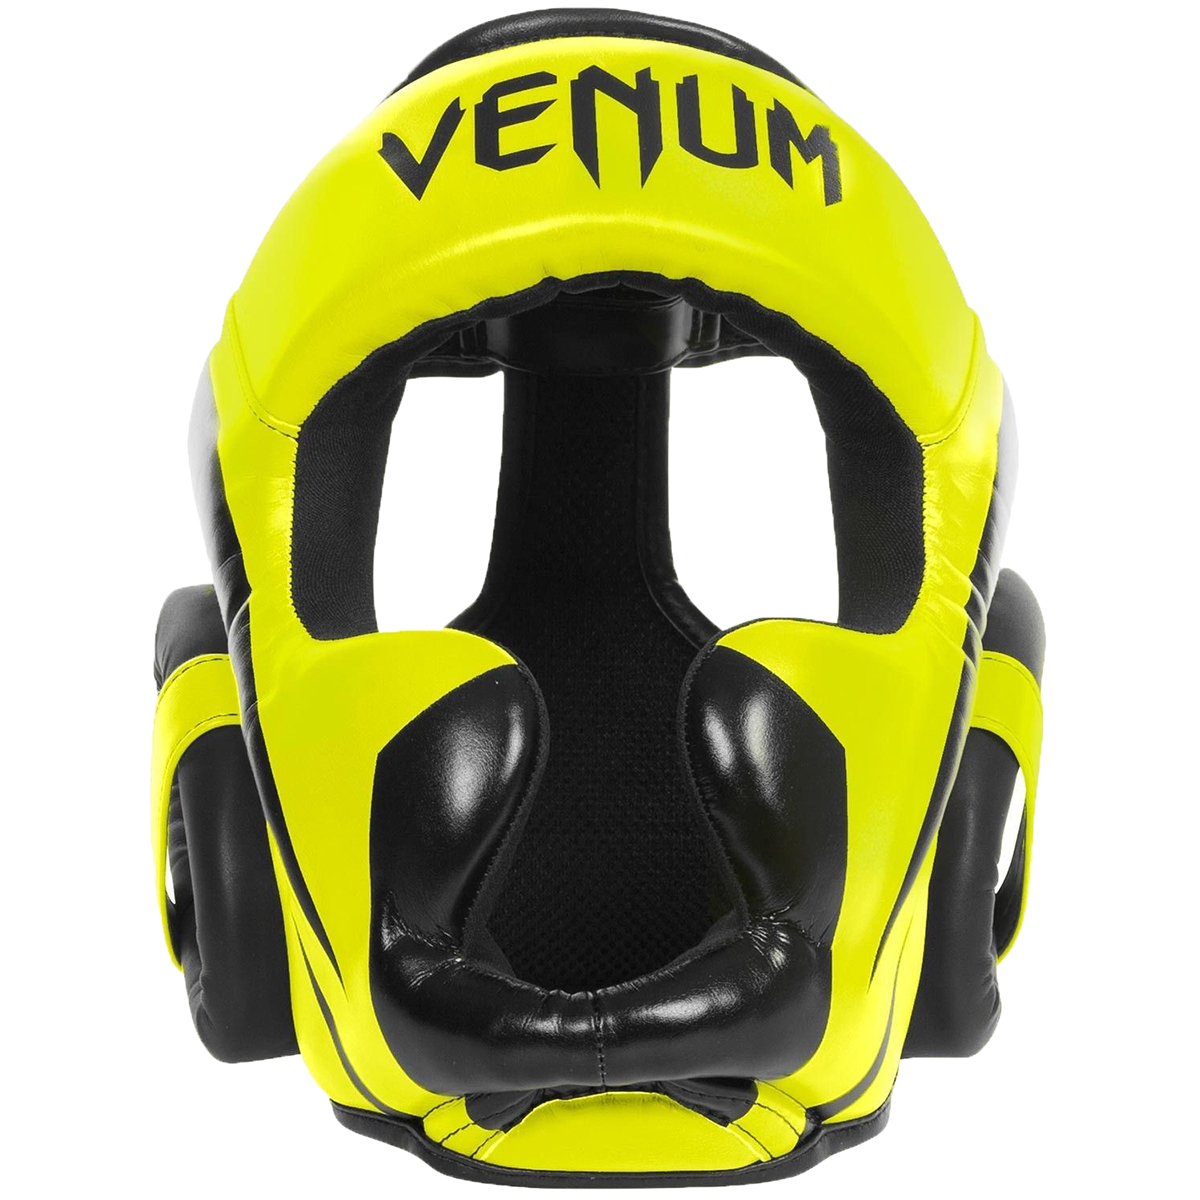 Venum-Elite-Boxing-Headgear thumbnail 62